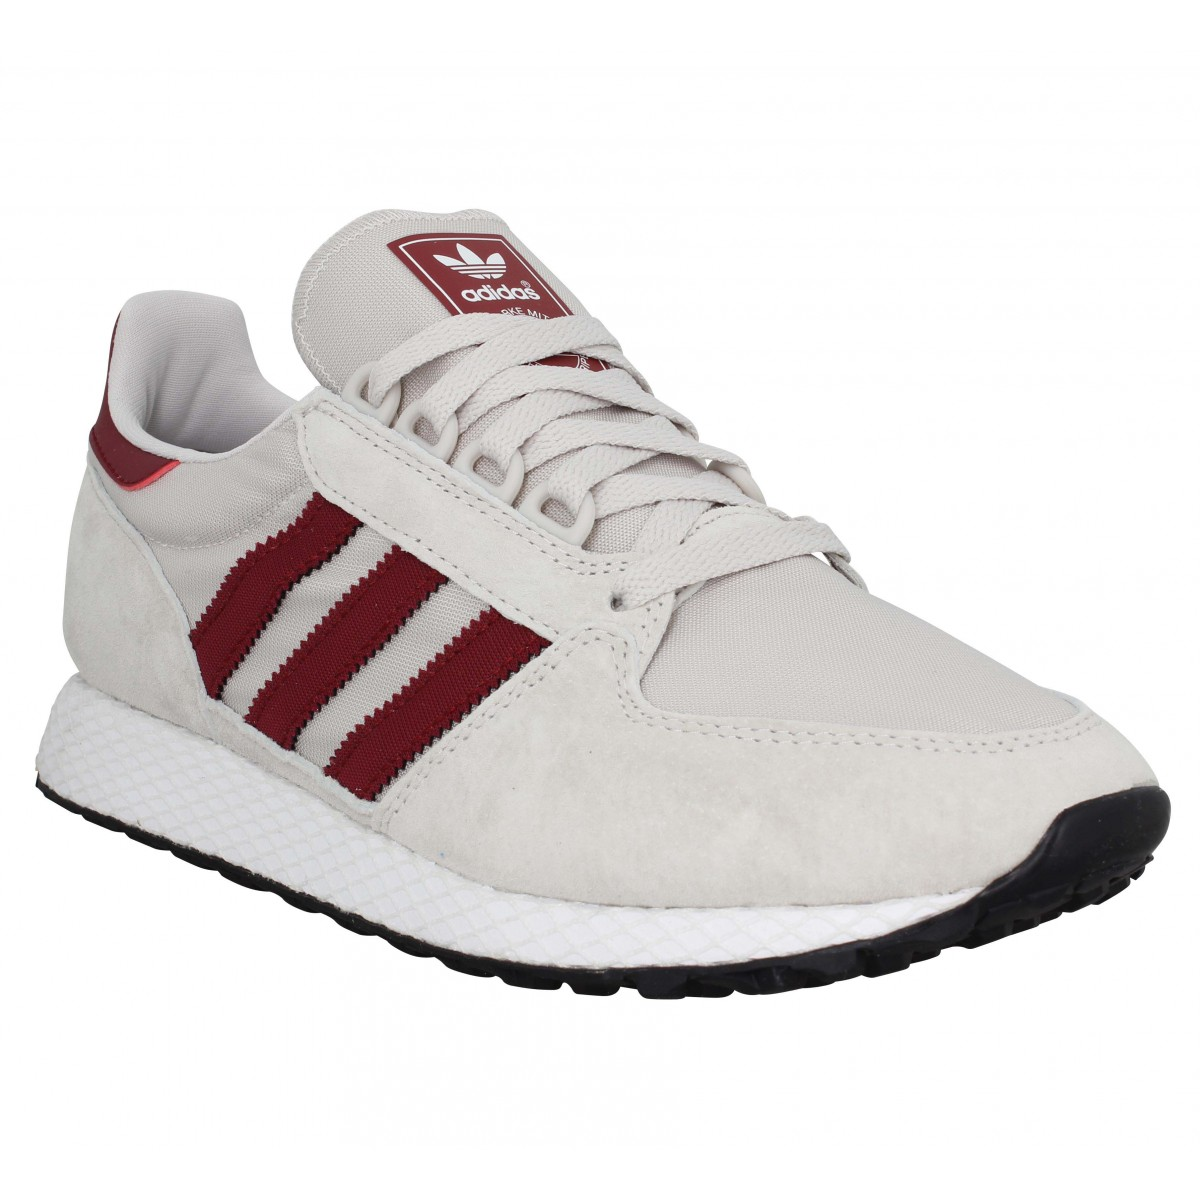 competitive price be7c5 5bf7d Beige Grove Homme Adidas Forest Chaussures Toile Fanny n1qT5SITxp